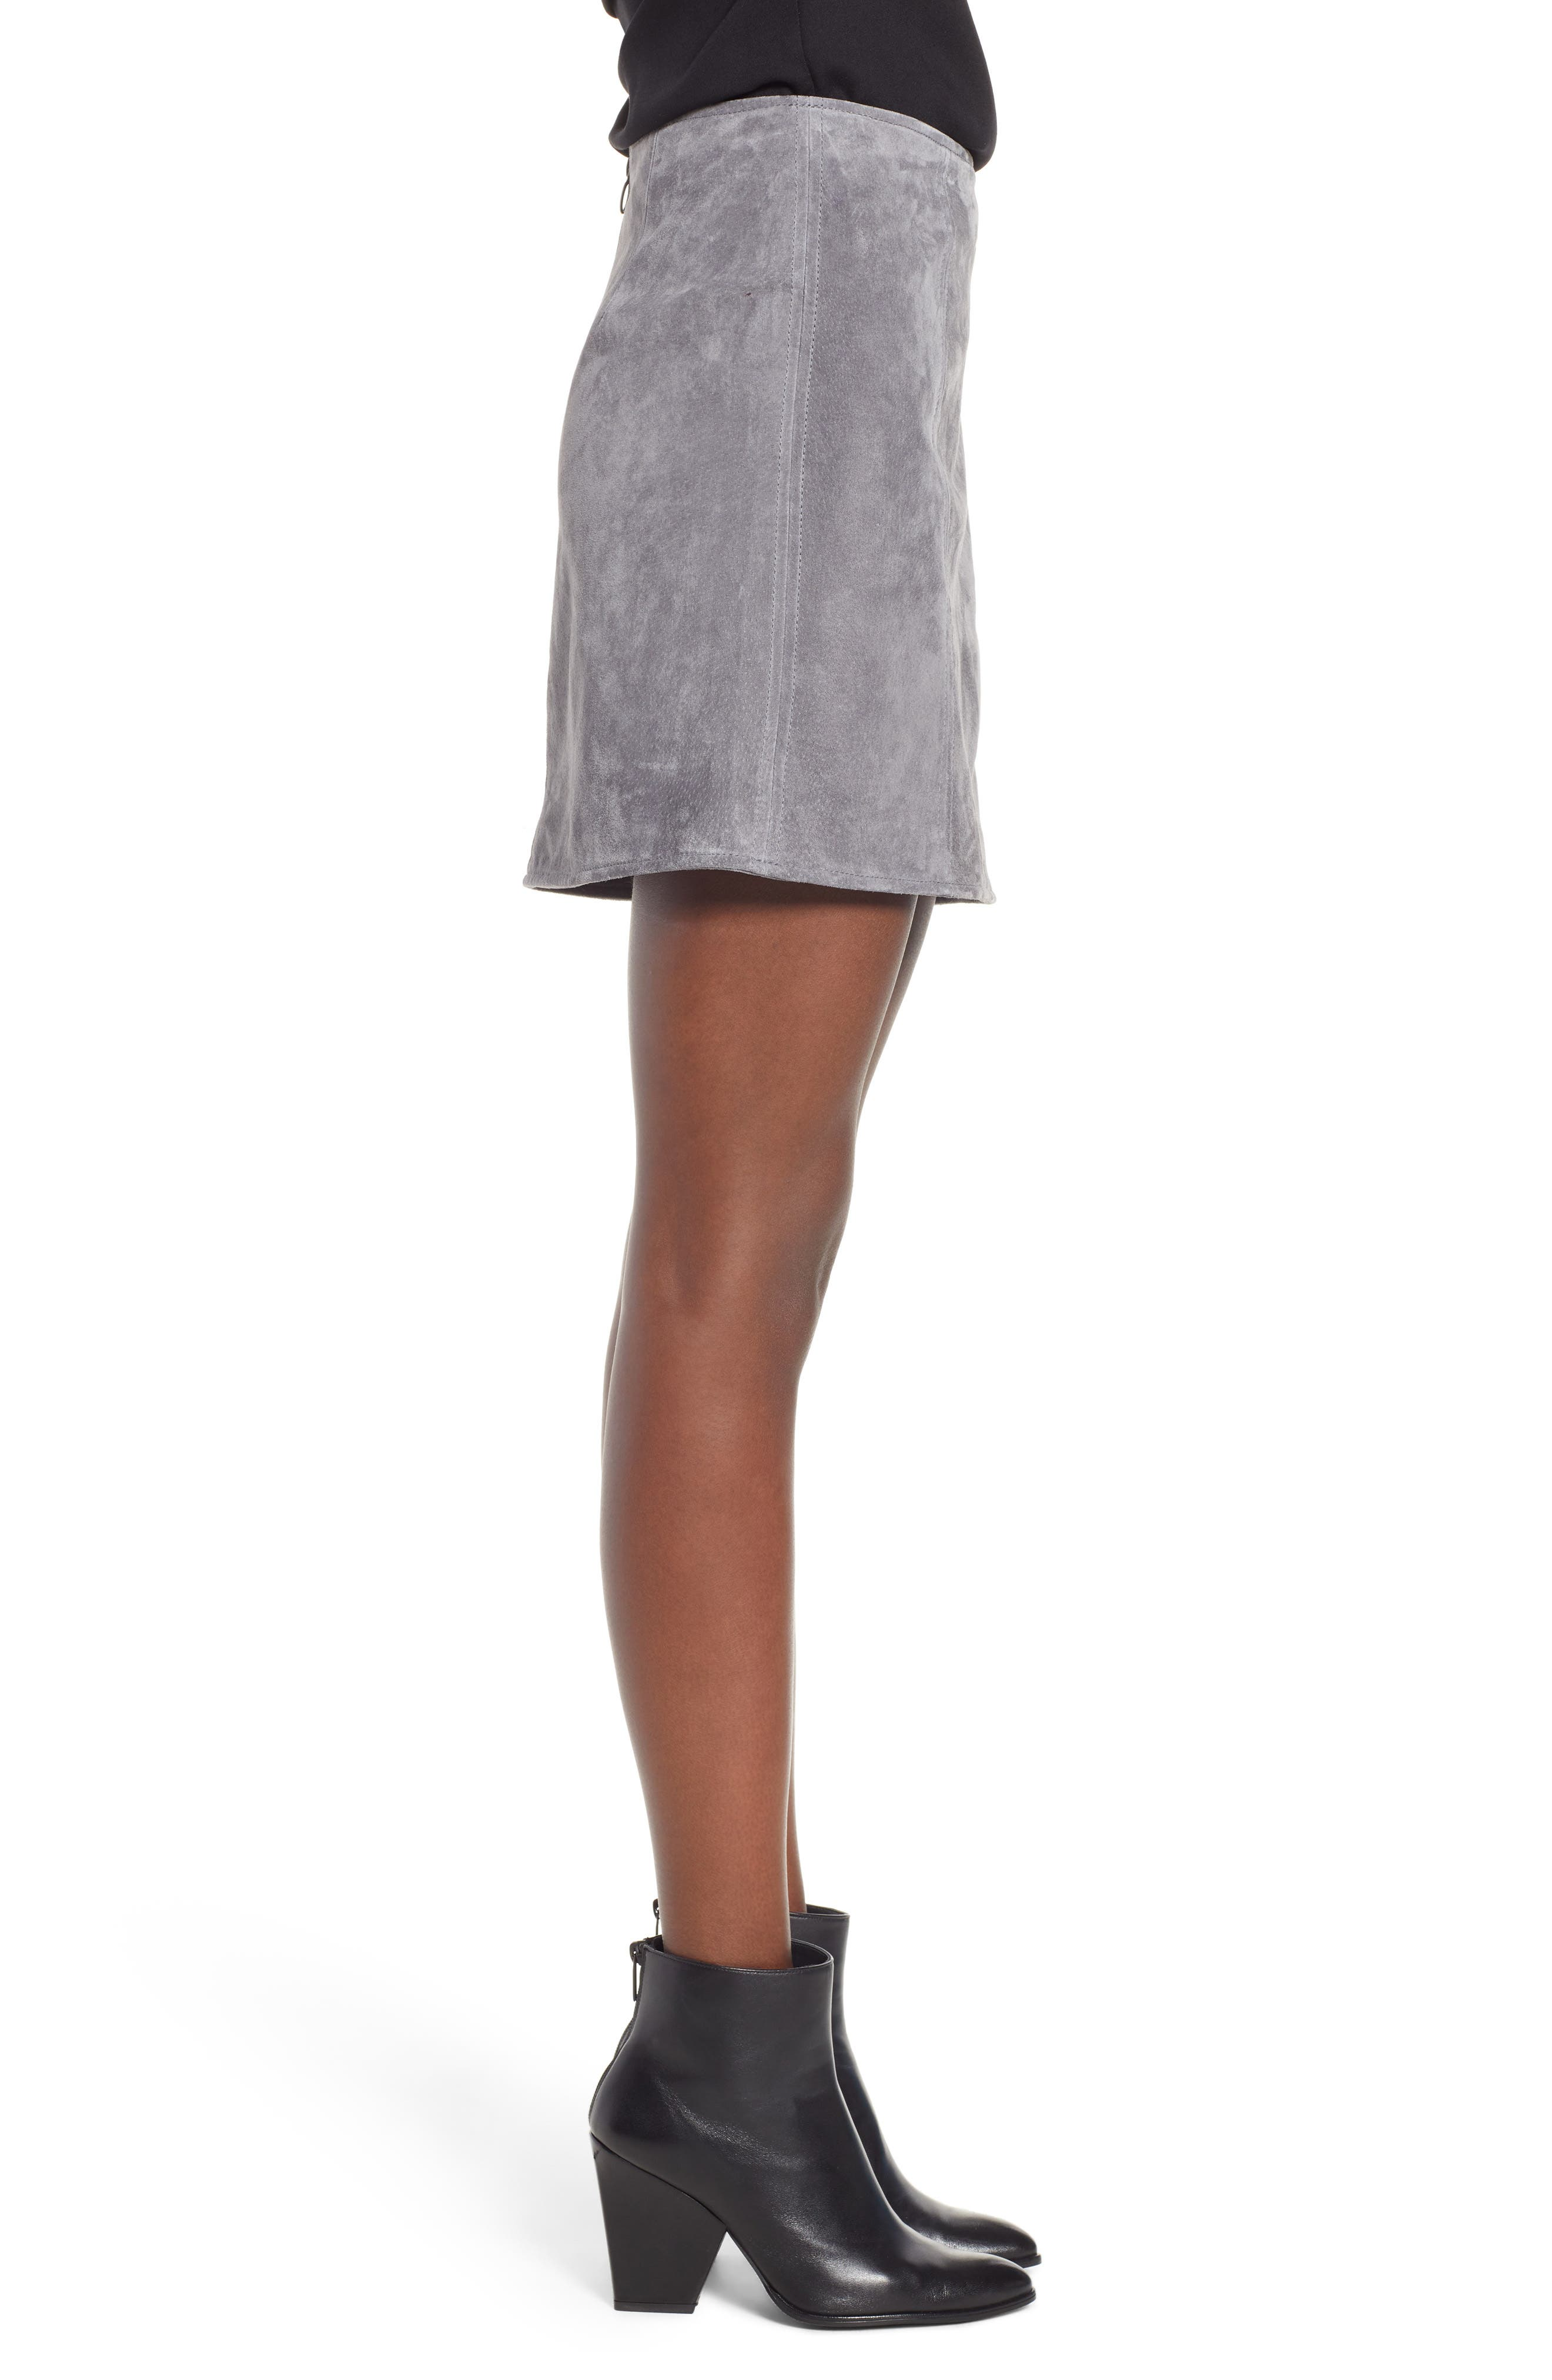 BLANKNYC, A-Line Suede Skirt, Alternate thumbnail 3, color, 020